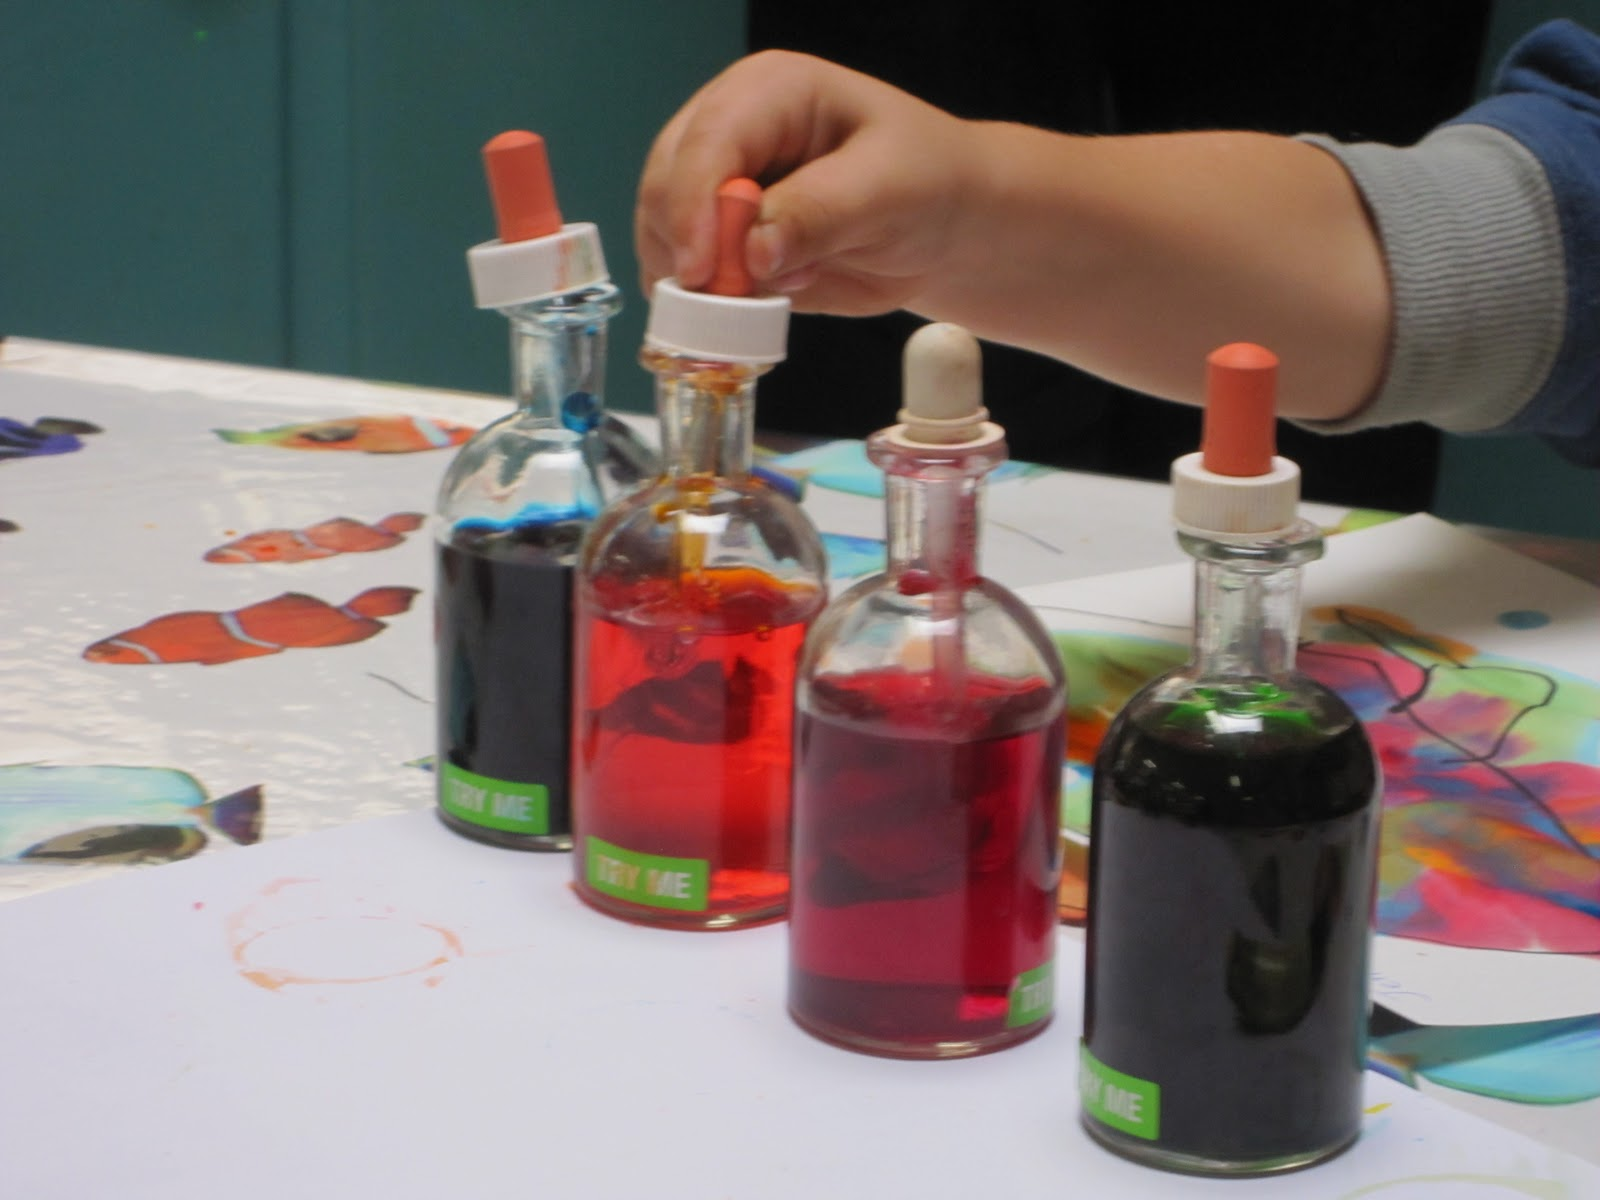 potions mixing colours flights of whimsy